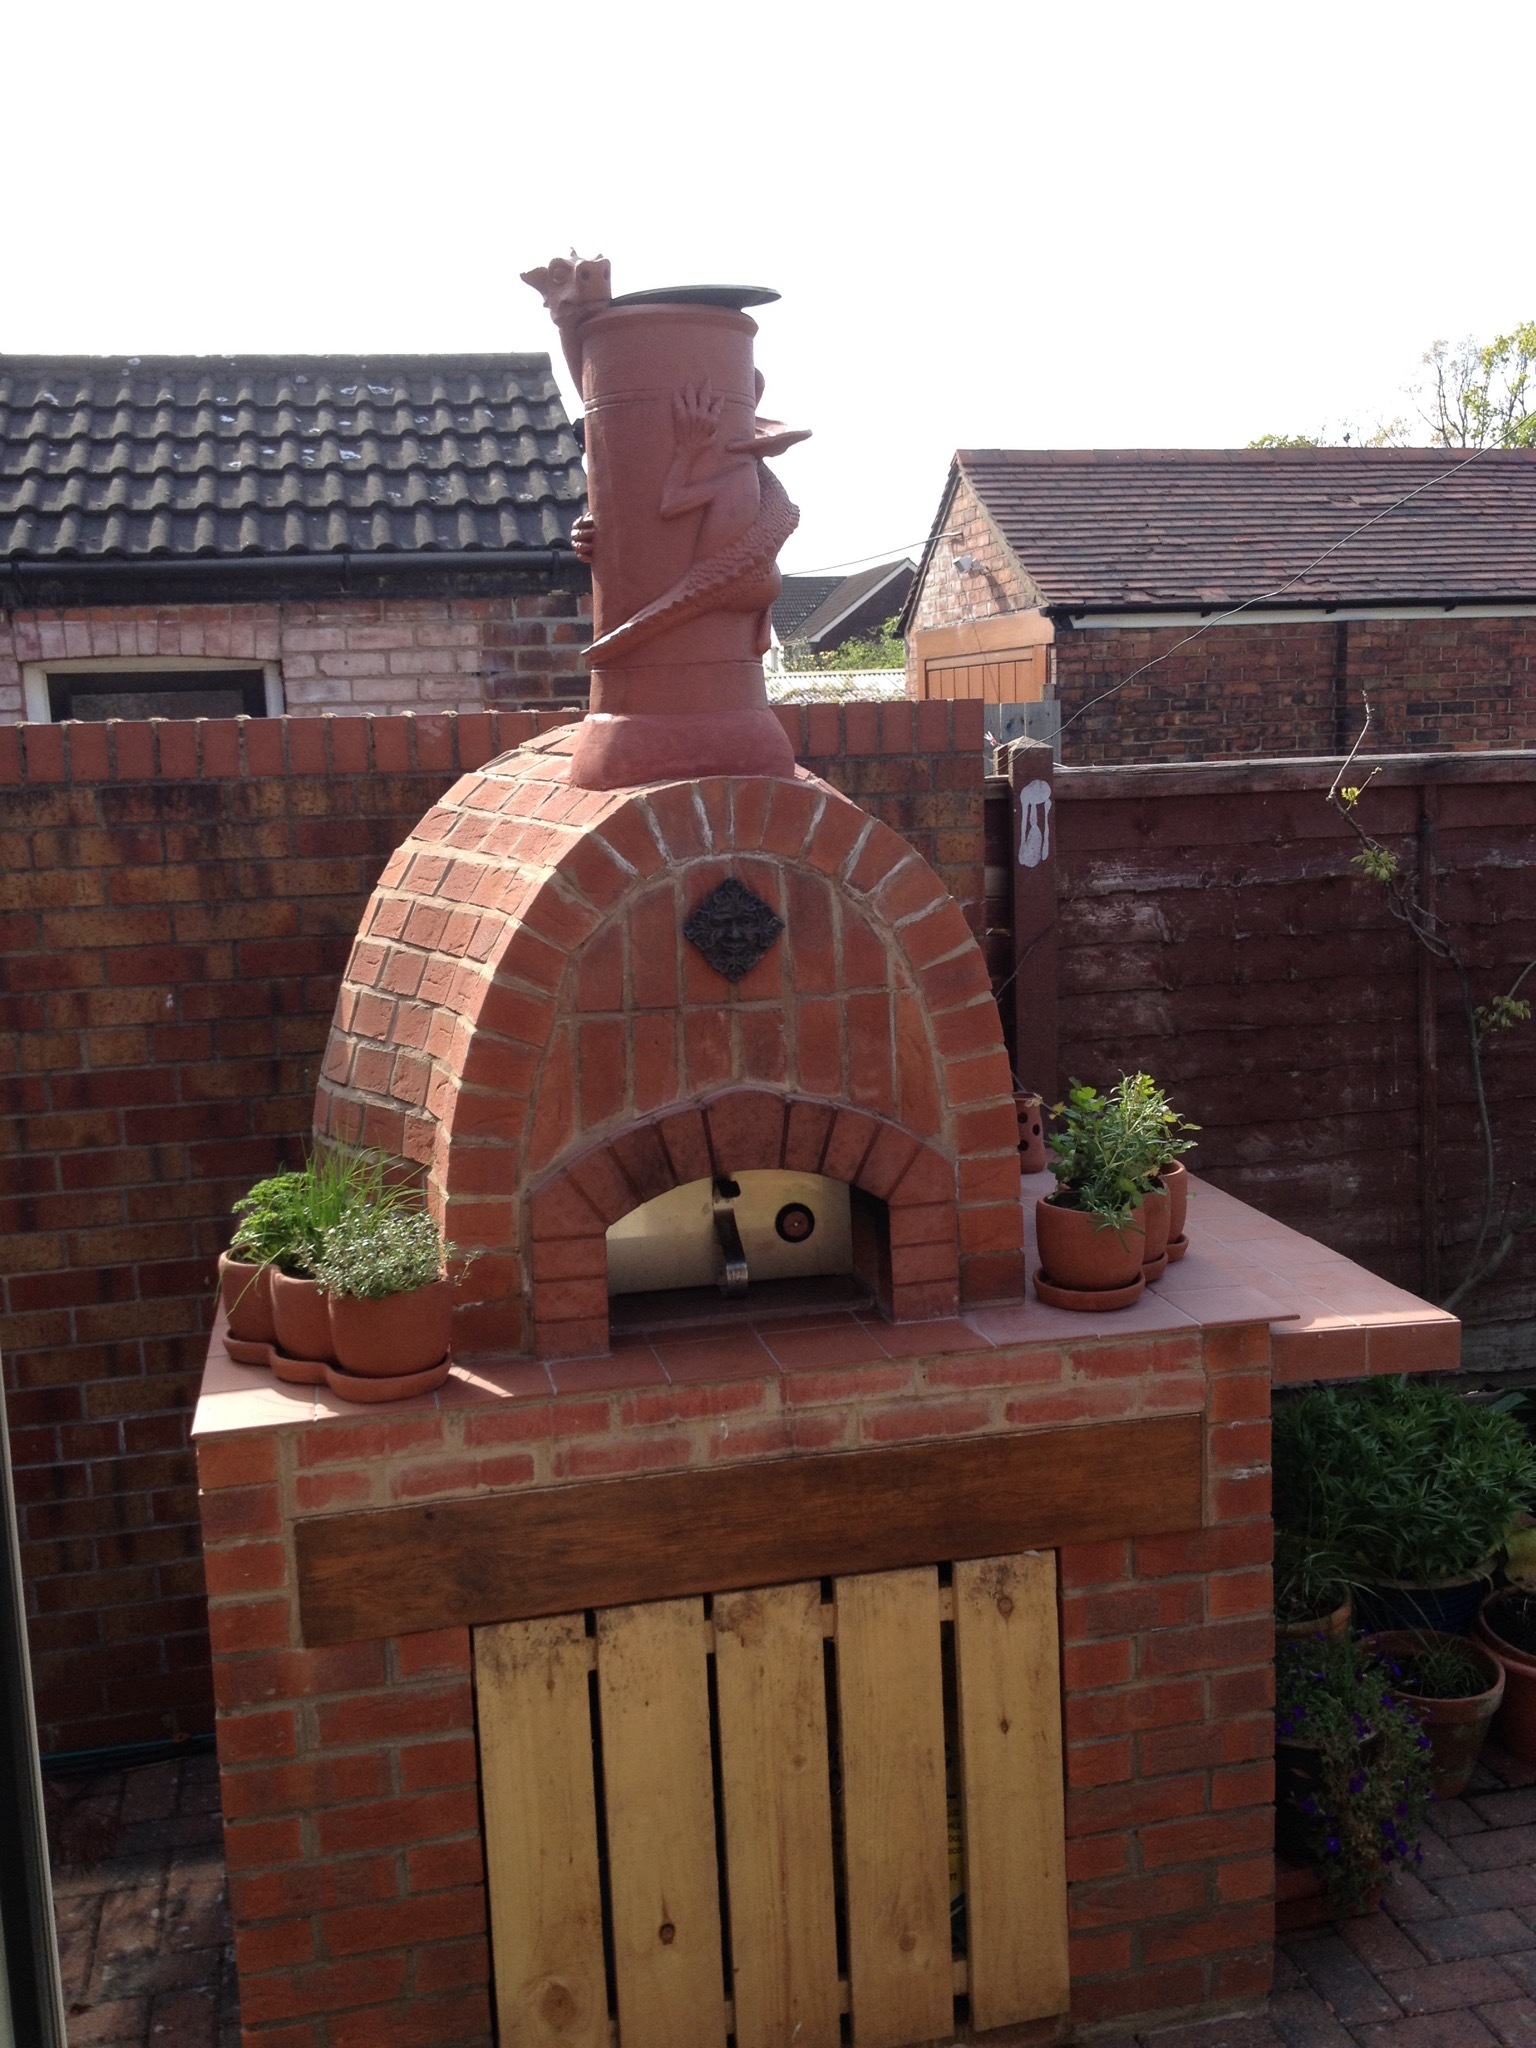 terracotta dragon chimney pot installed on a pizza oven